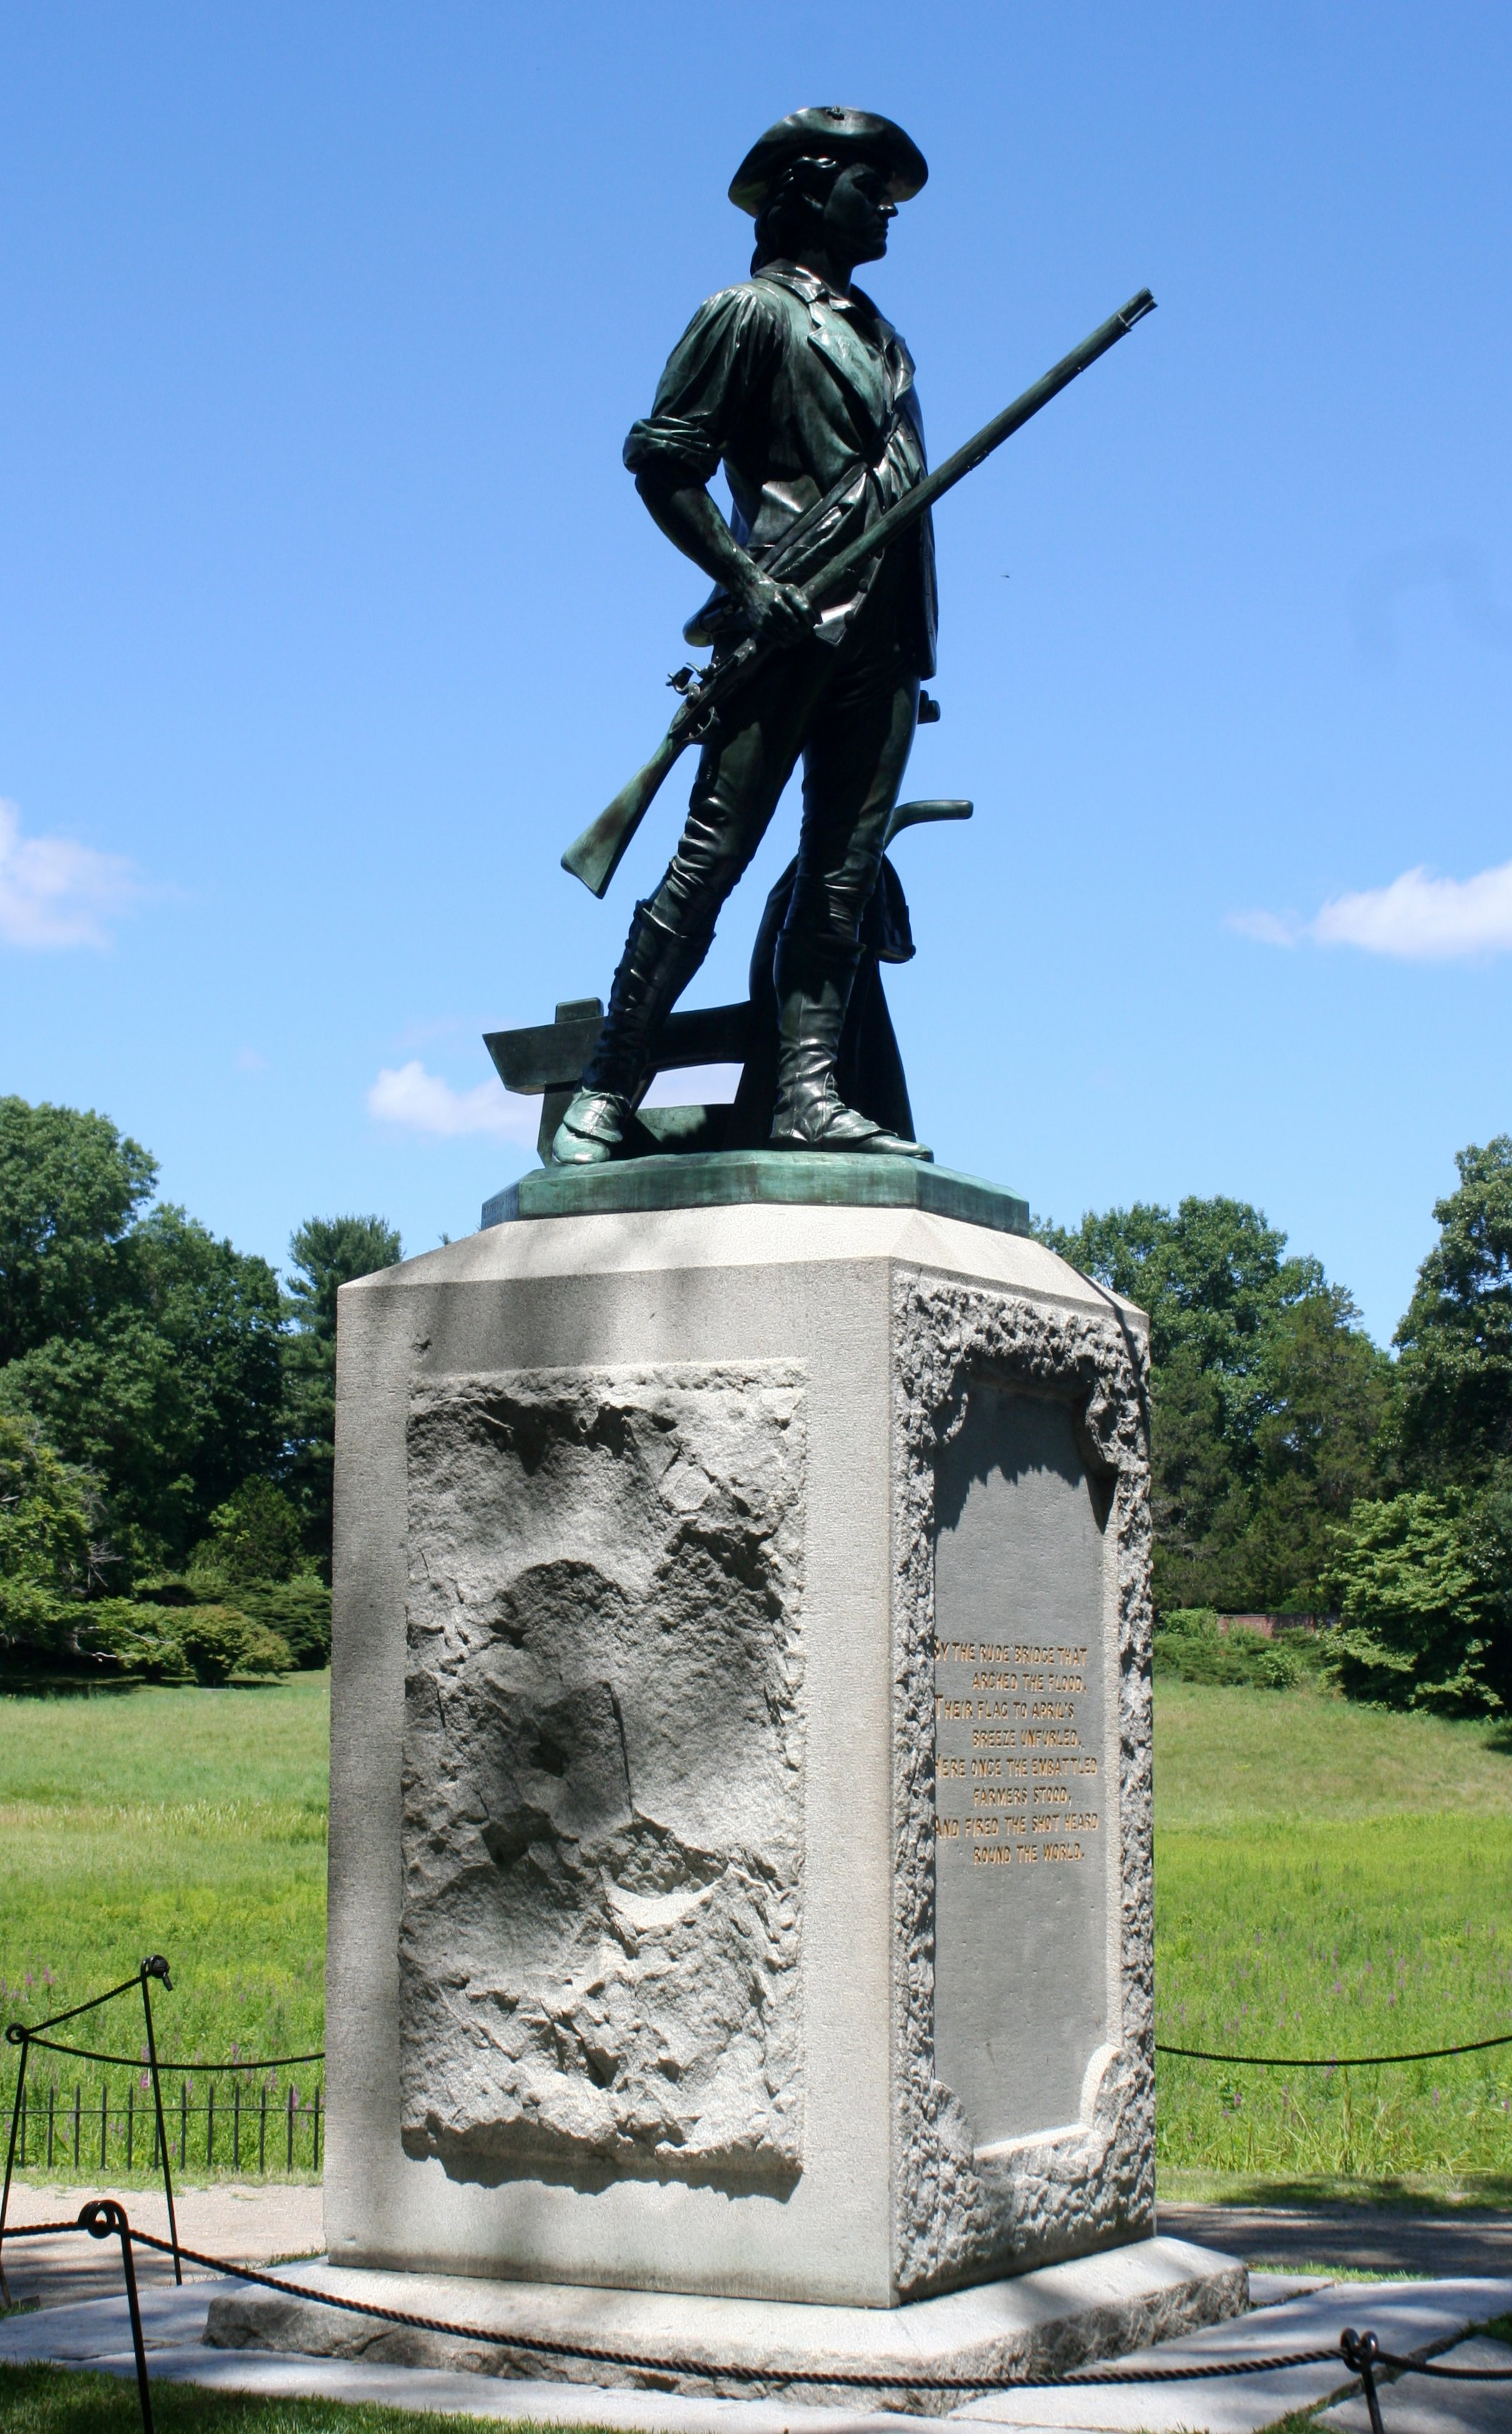 The Minute Man, statue by Daniel Chester French, at the Old North Bridge, Concord, Massachusetts. Photo taken on July 12, 2007.